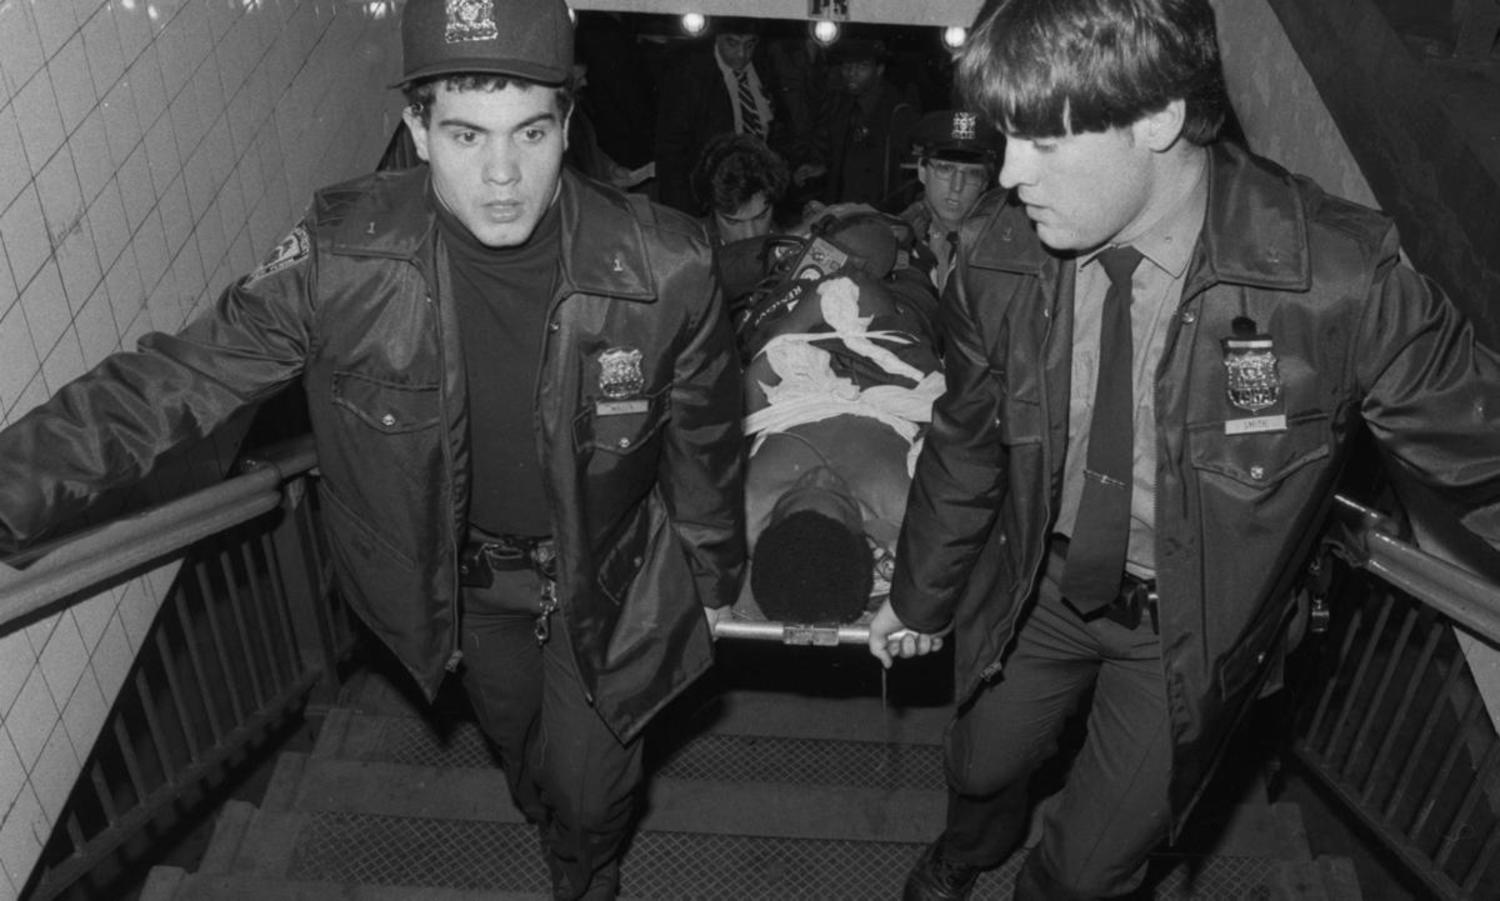 1980's: One of Bernhard Goetz's gunshot victims is carried out of the subway by paramedics.